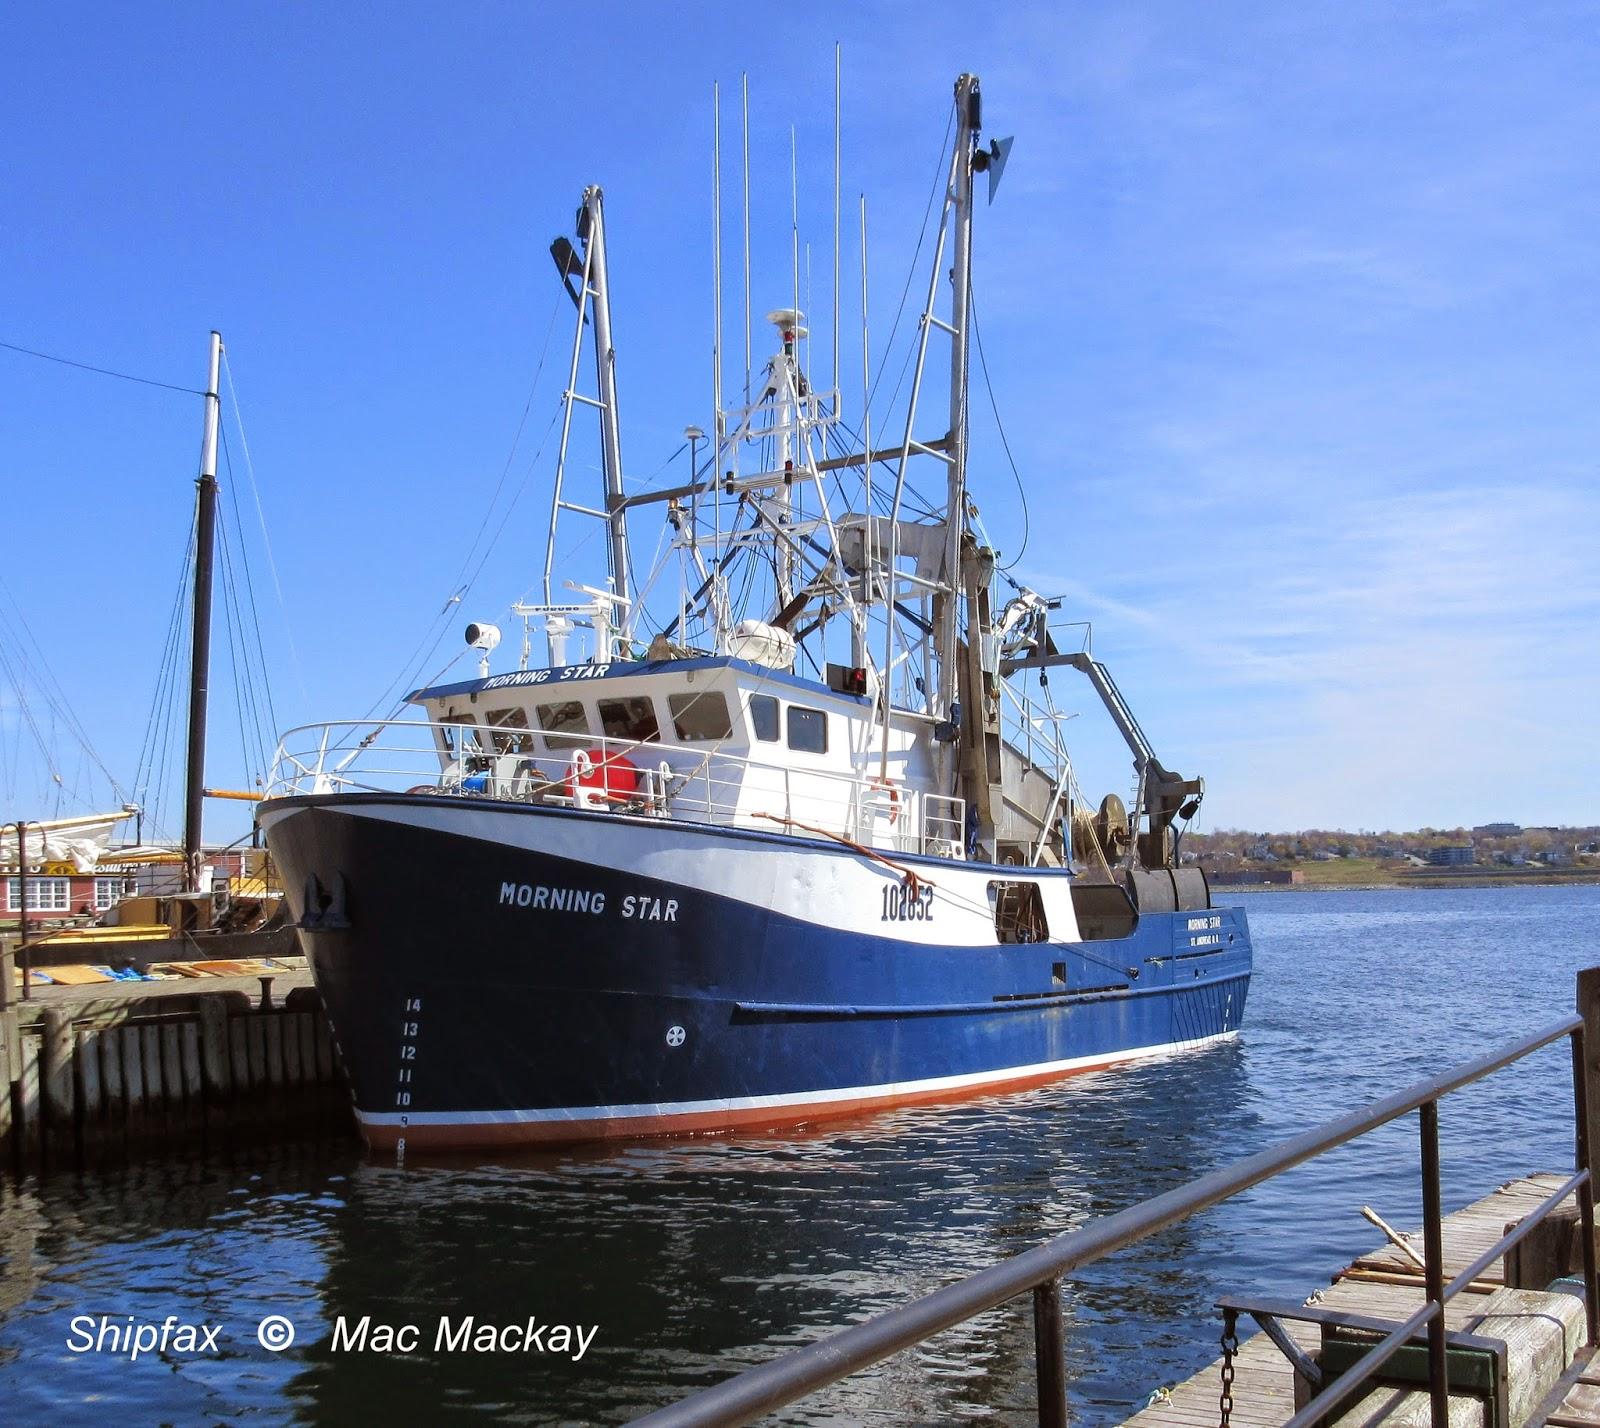 Shipfax: Fishing Boats, Now and Then - UPDATED